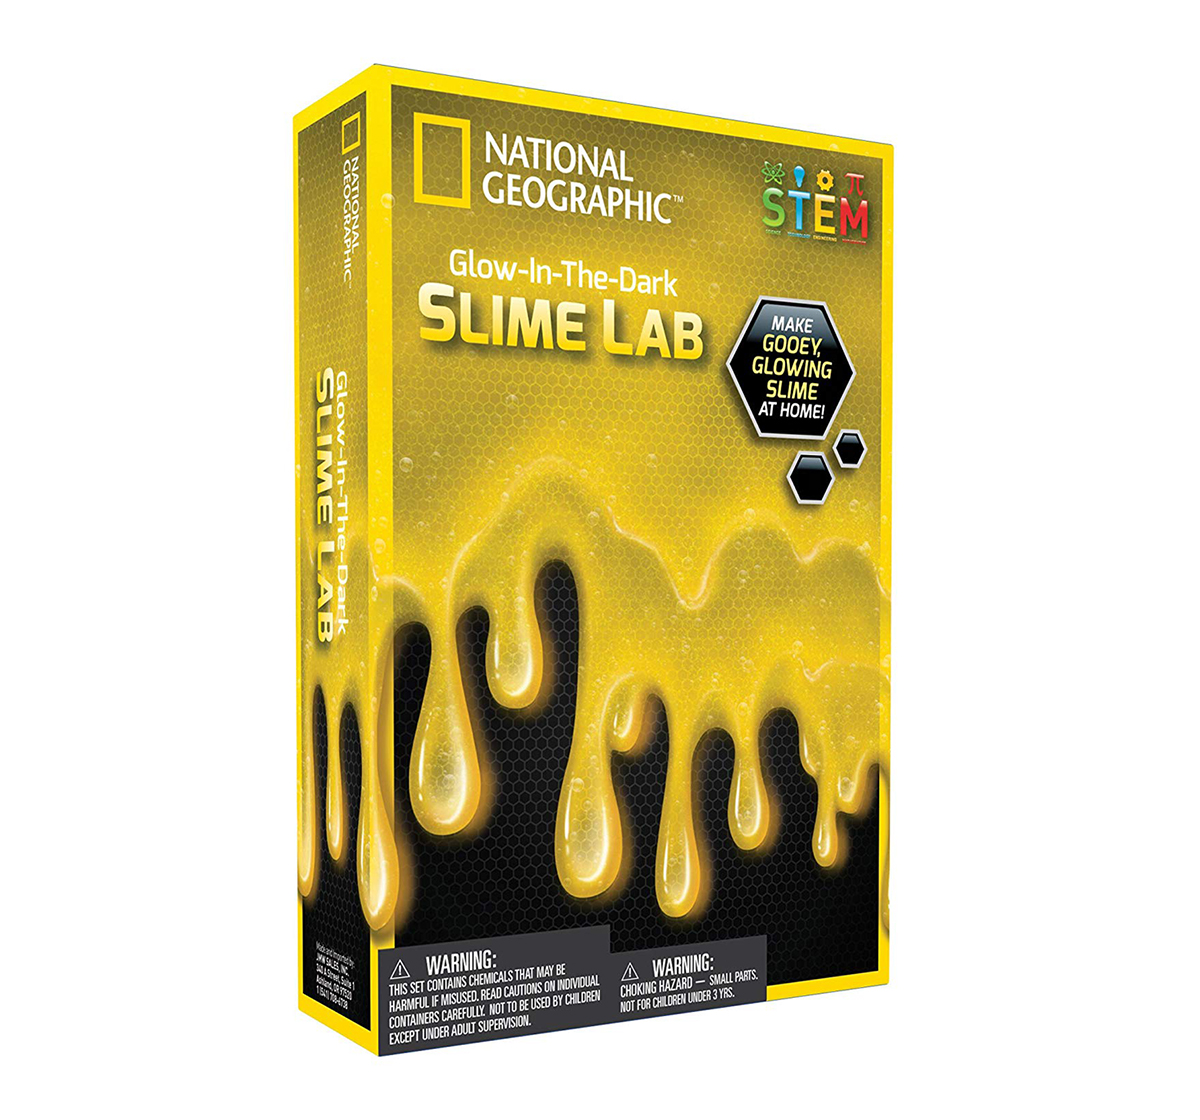 National Geographic |  National Geographic DIY Science Lab Make Glowing Slime Science Kit for Kids age 6Y+ (Yellow)